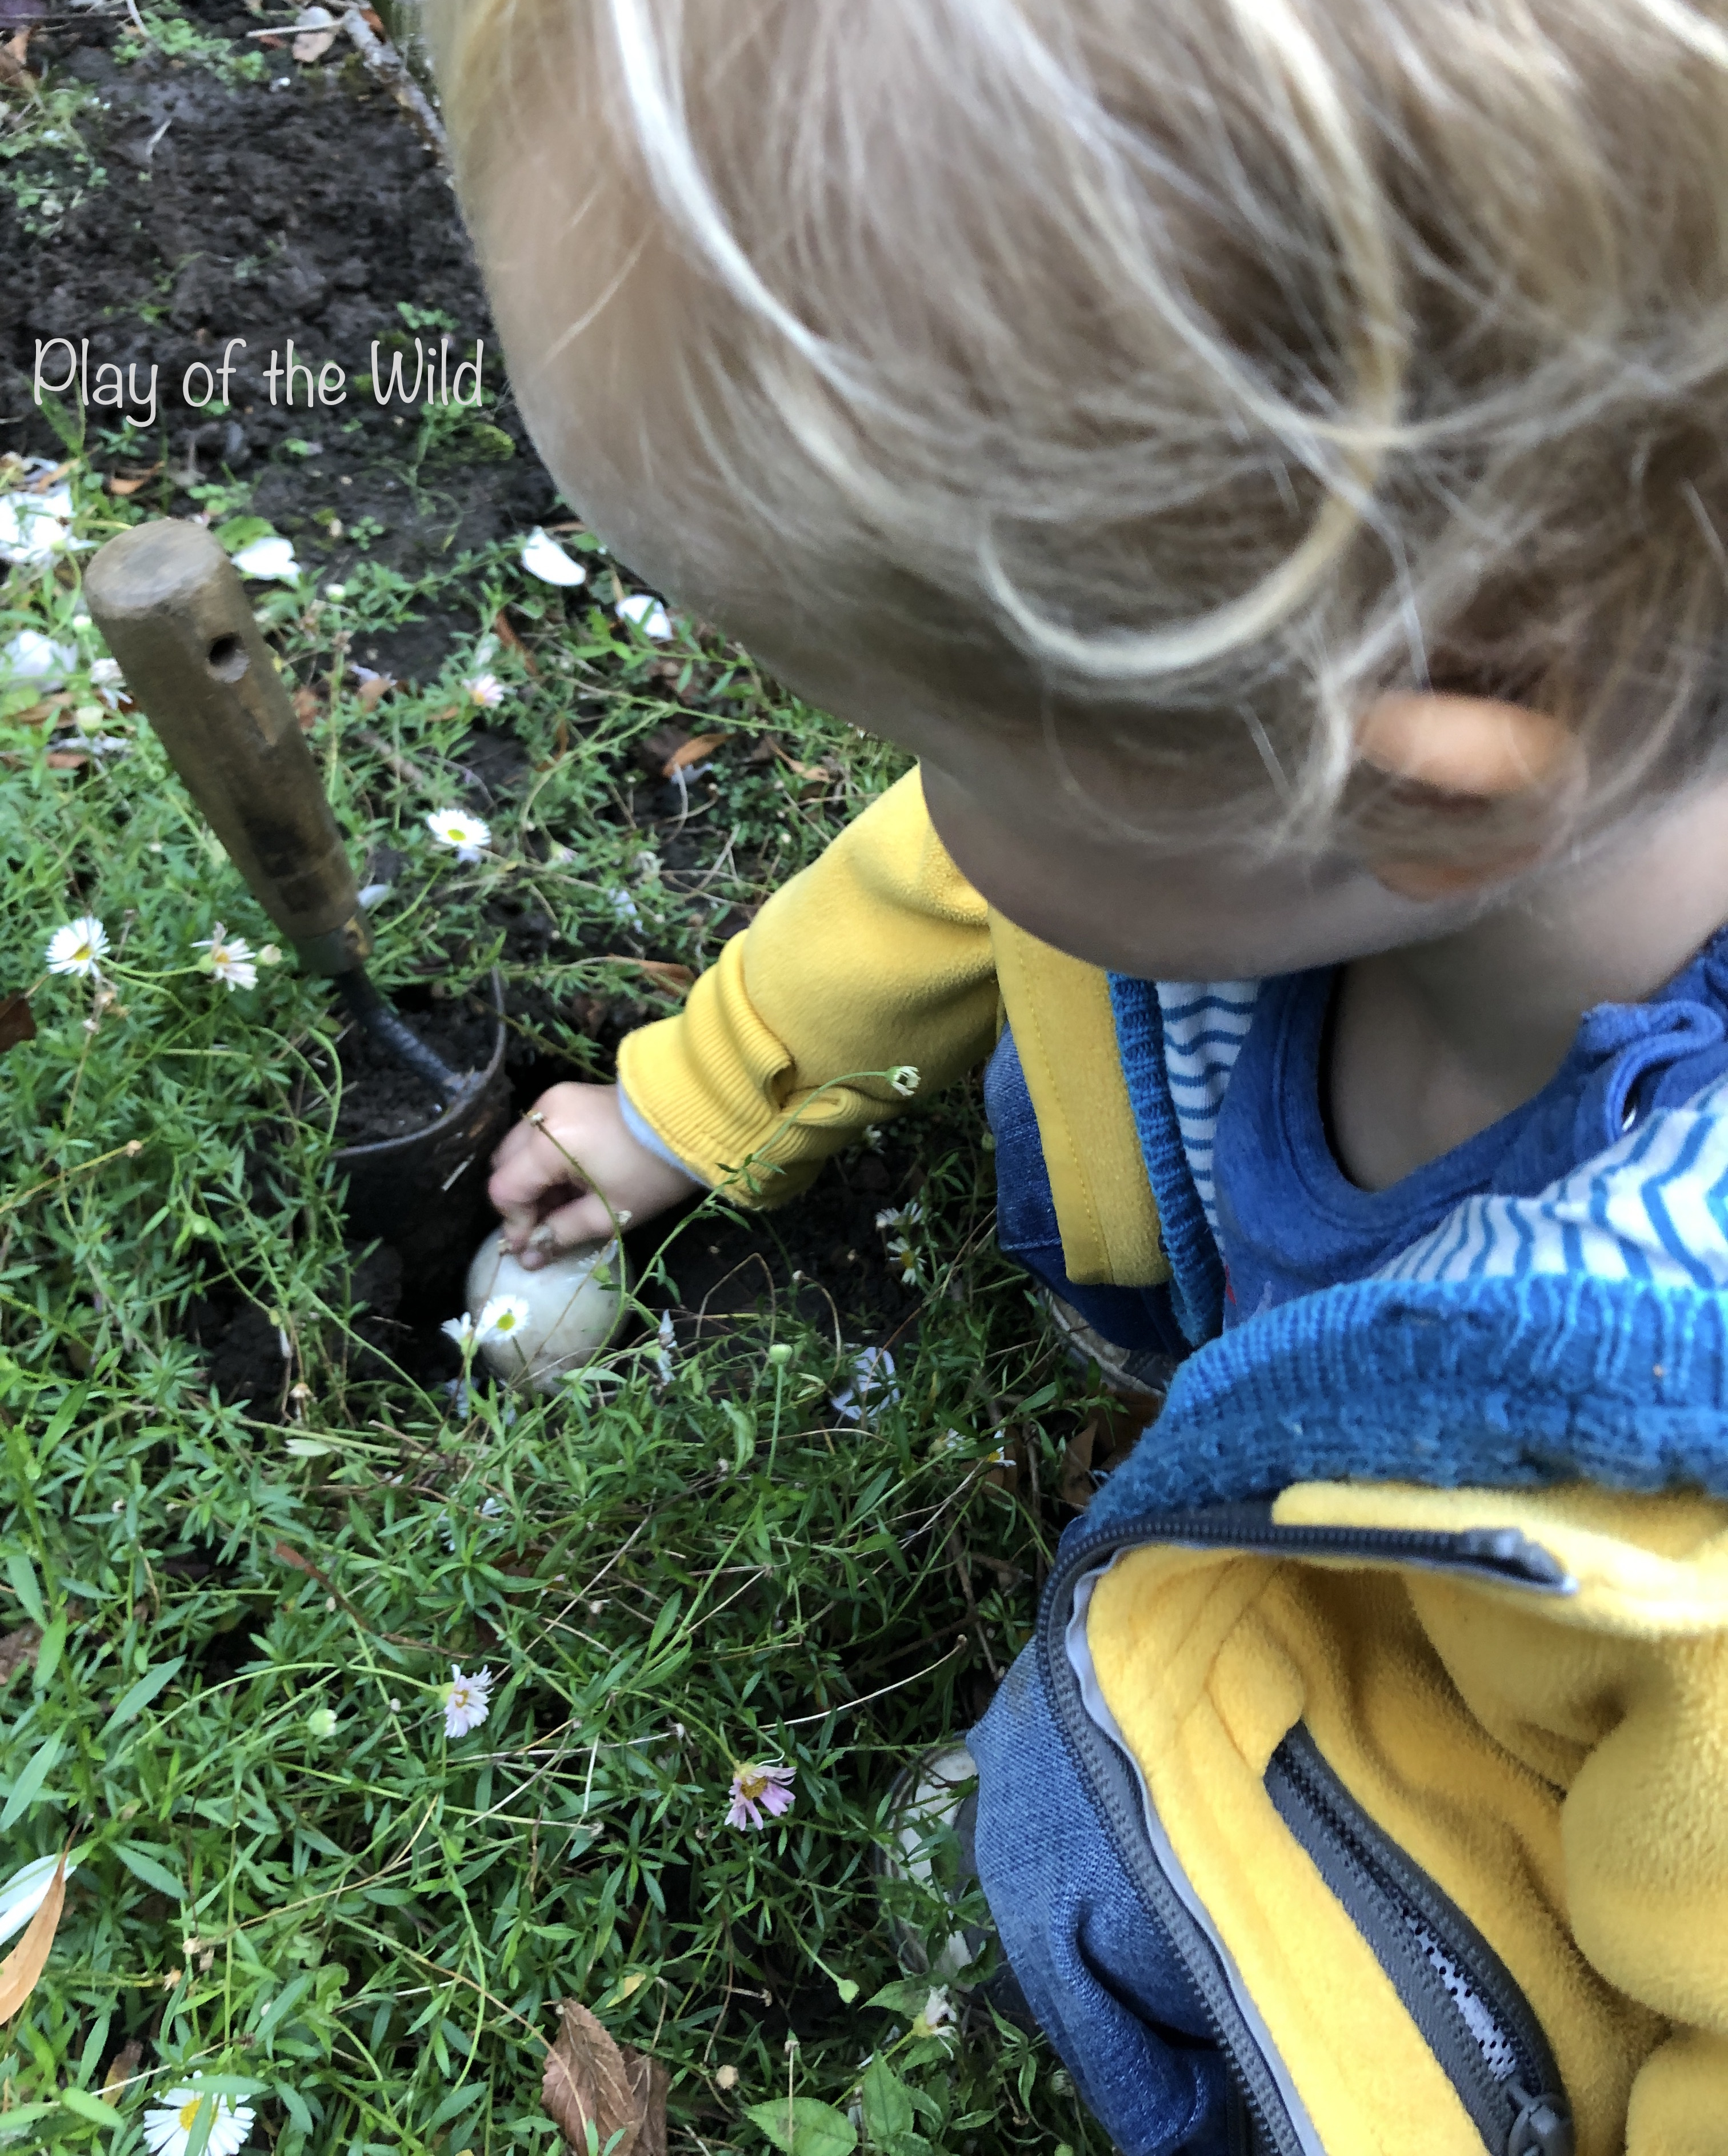 The Best Gardening Bulbs for Kids. Planting bulbs with children.